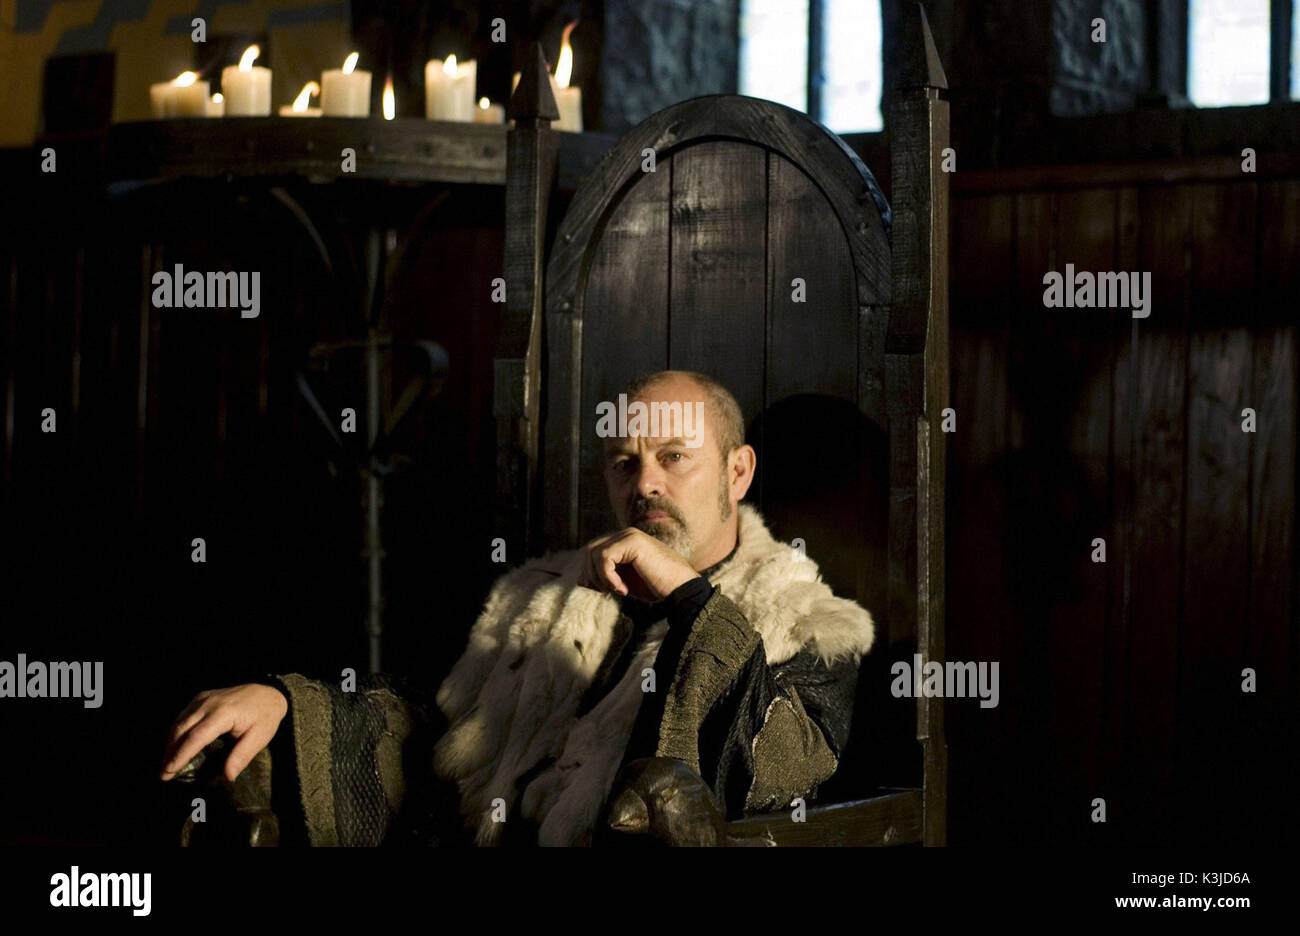 ROBIN HOOD KEITH ALLEN as Sheriff of Nottingham ROBIN HOOD     Date: 2006 - Stock Image